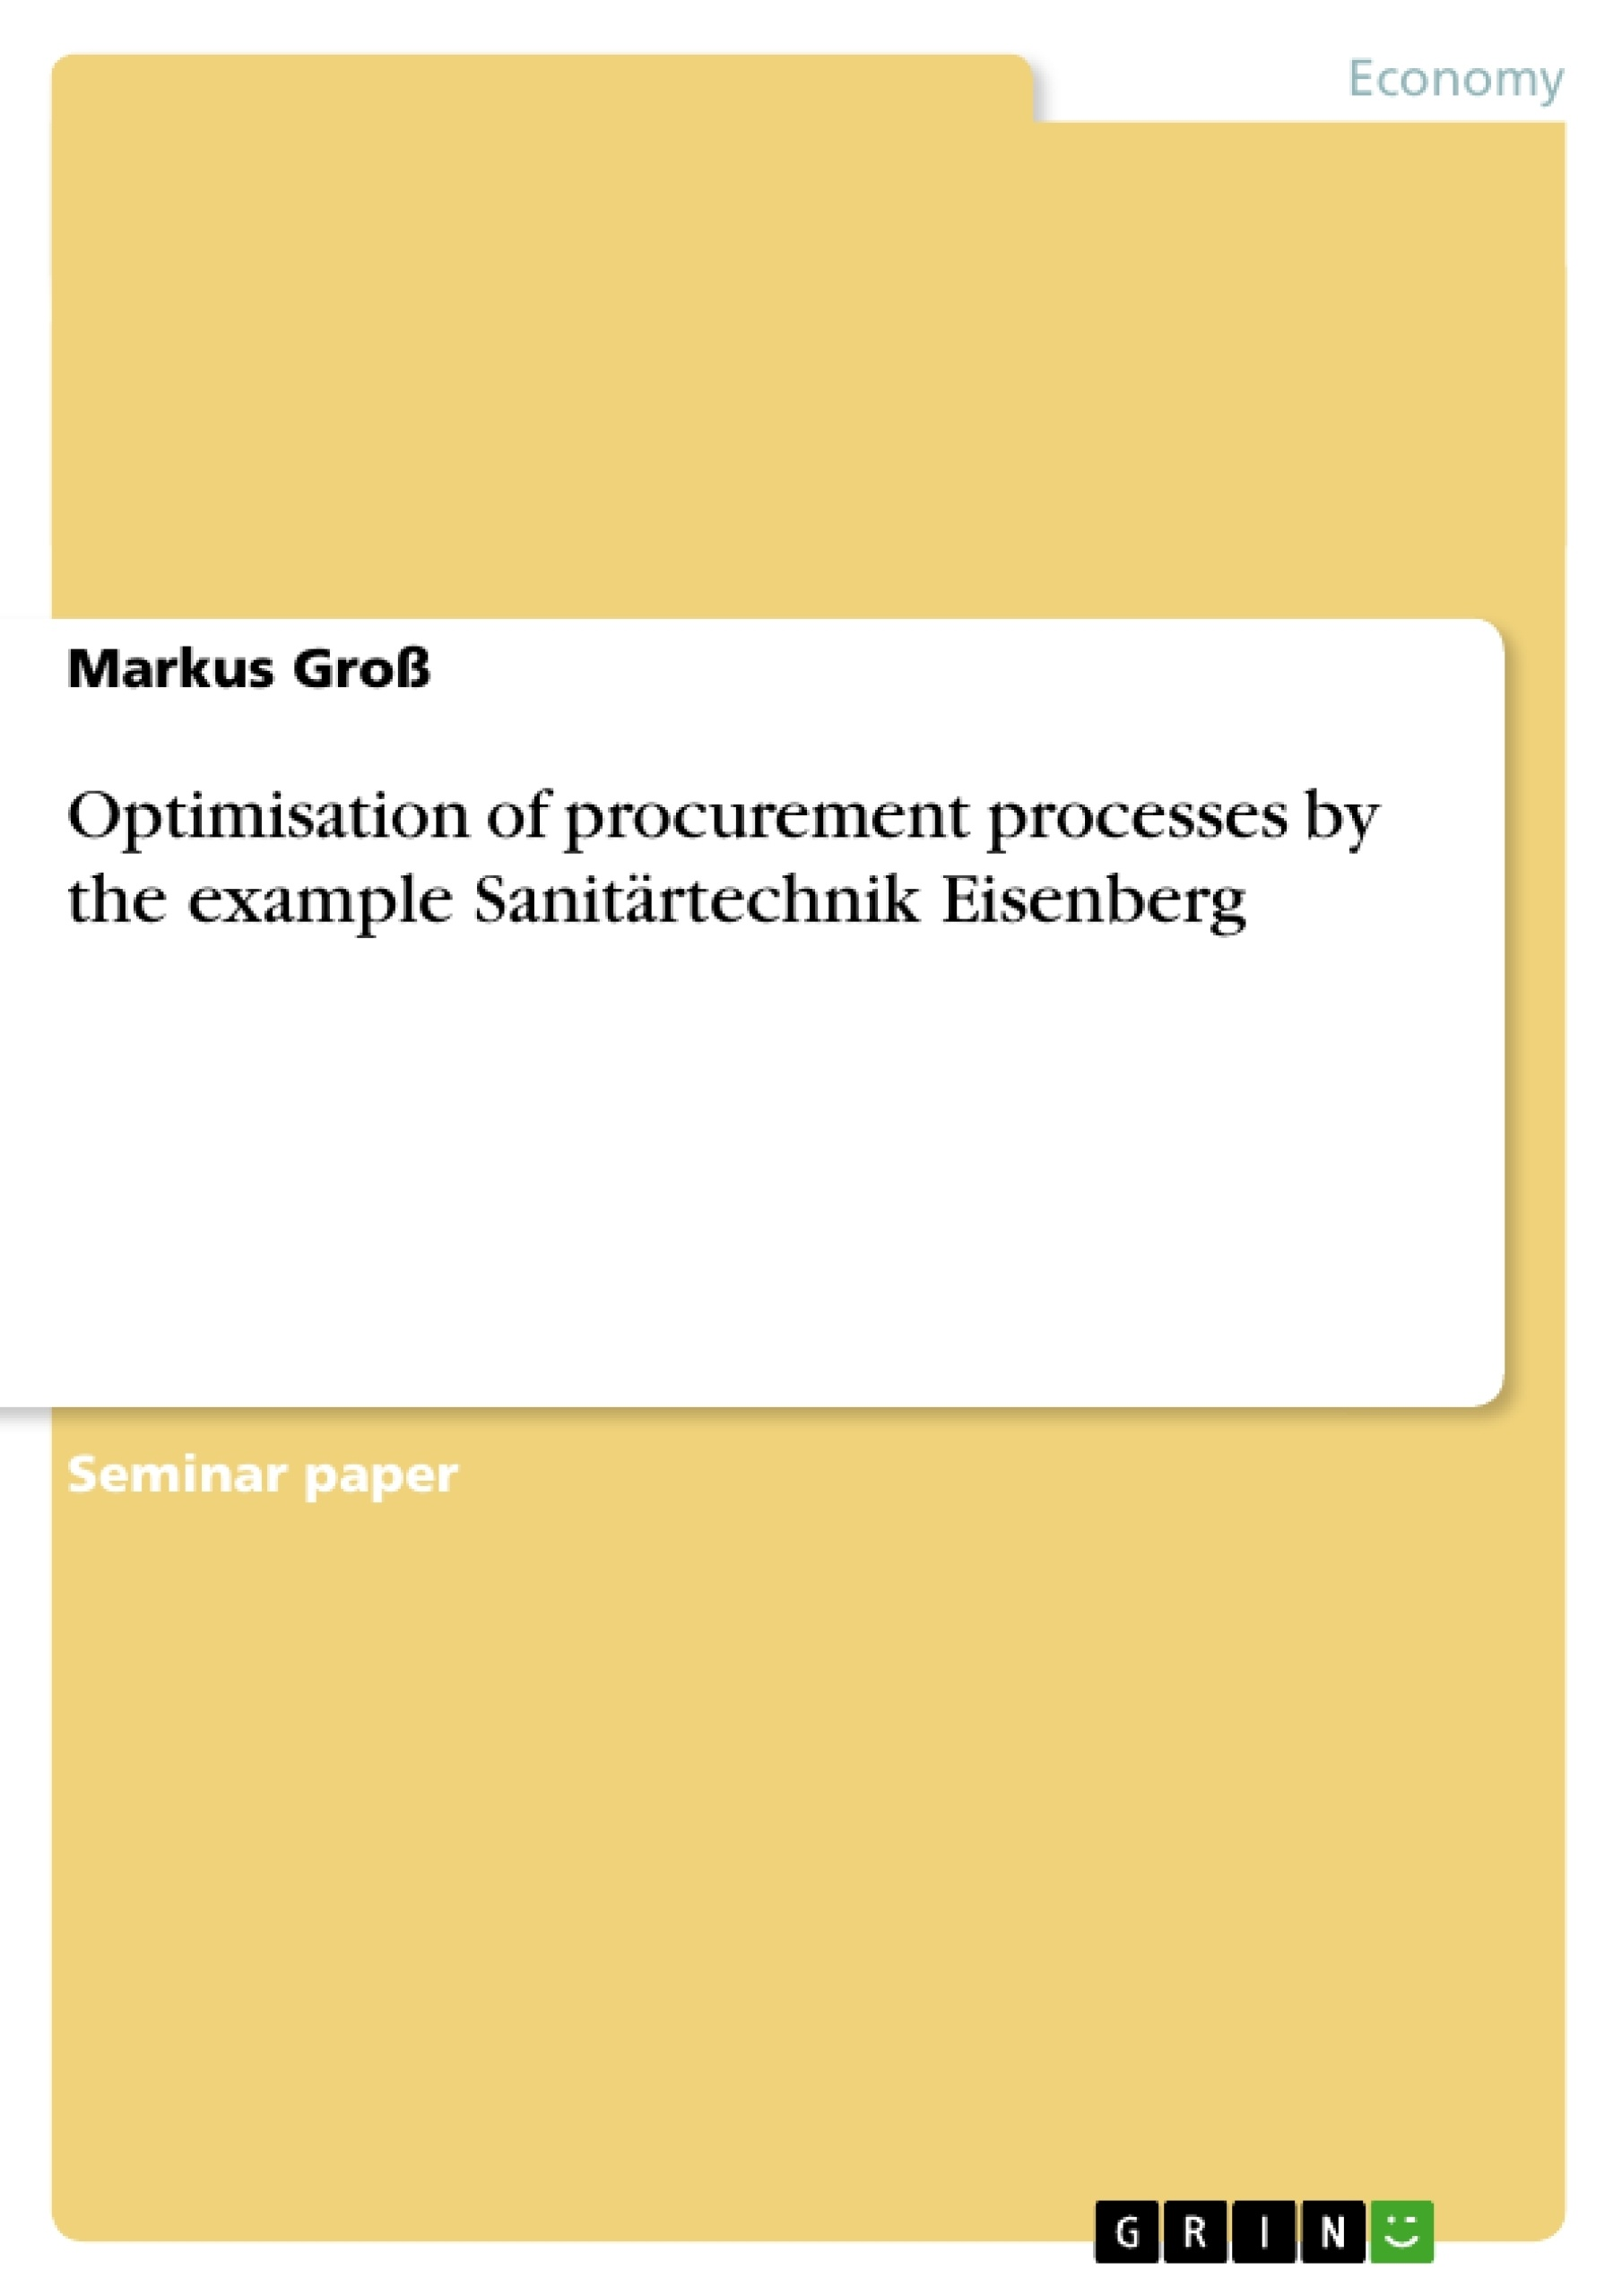 Title: Optimisation of procurement processes by the example Sanitärtechnik Eisenberg